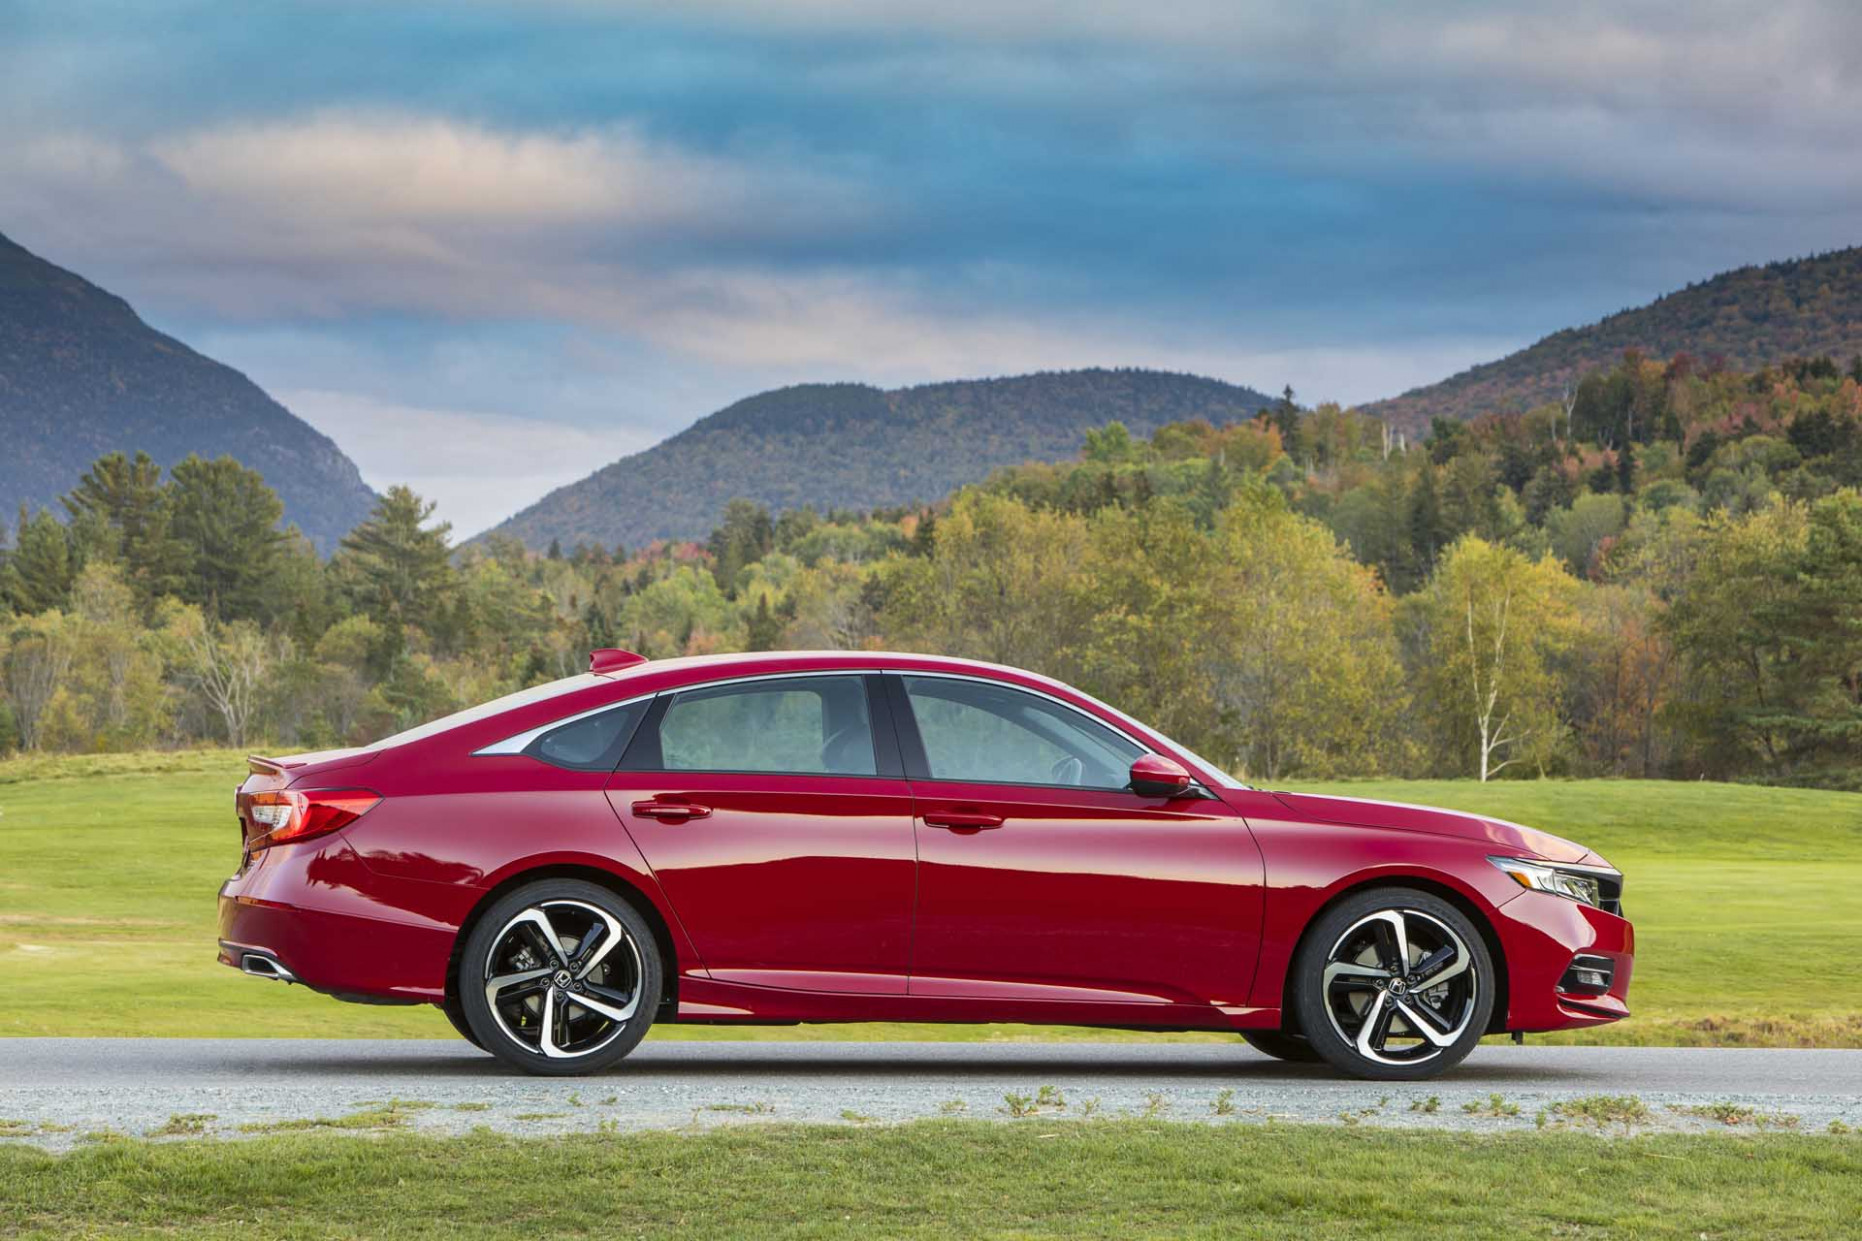 8 Honda Accord Review, Ratings, Specs, Prices, and Photos - The ..